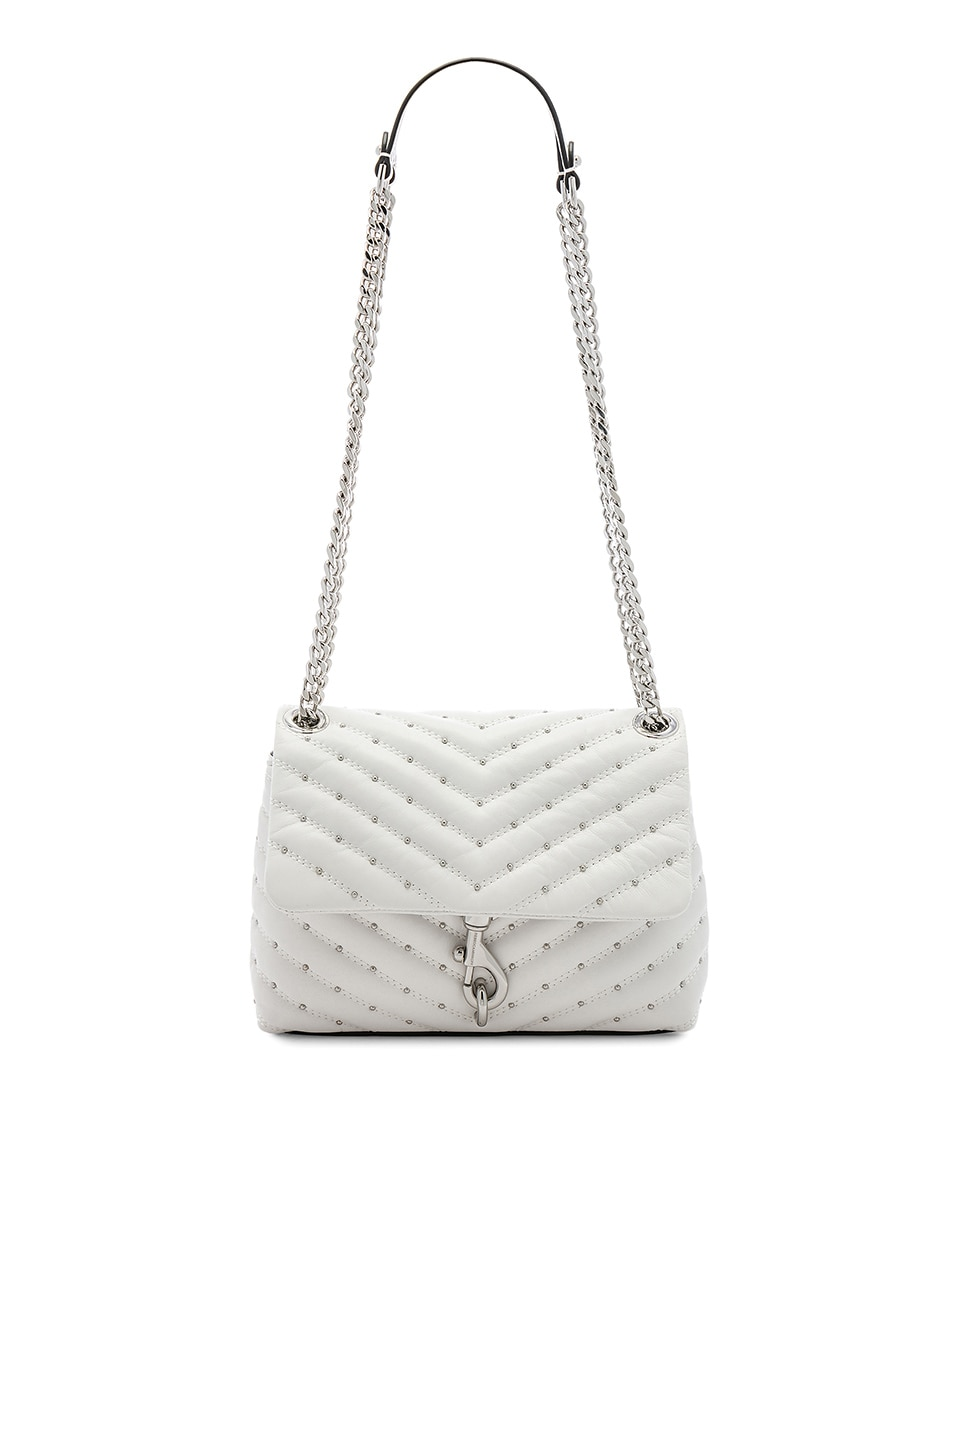 Rebecca Minkoff Edie Crossbody in Optic White